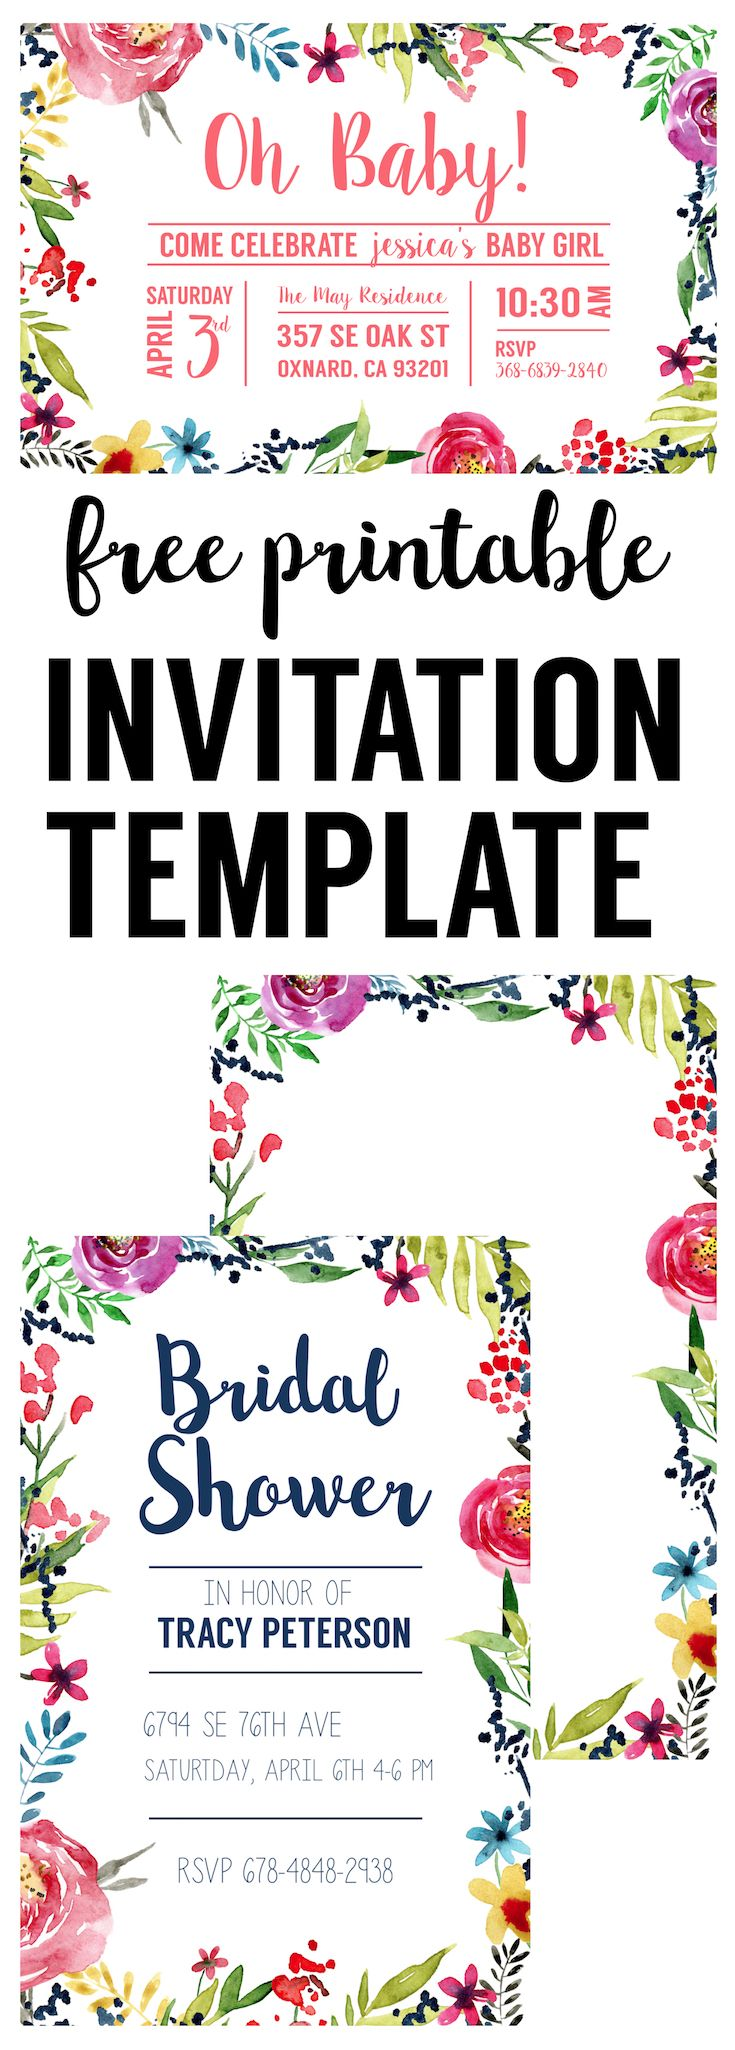 Floral Borders Invitations, Free Printable Invitation Templates. Great DIY watercolor flower invitation template for birthday party, bridal or baby shower.